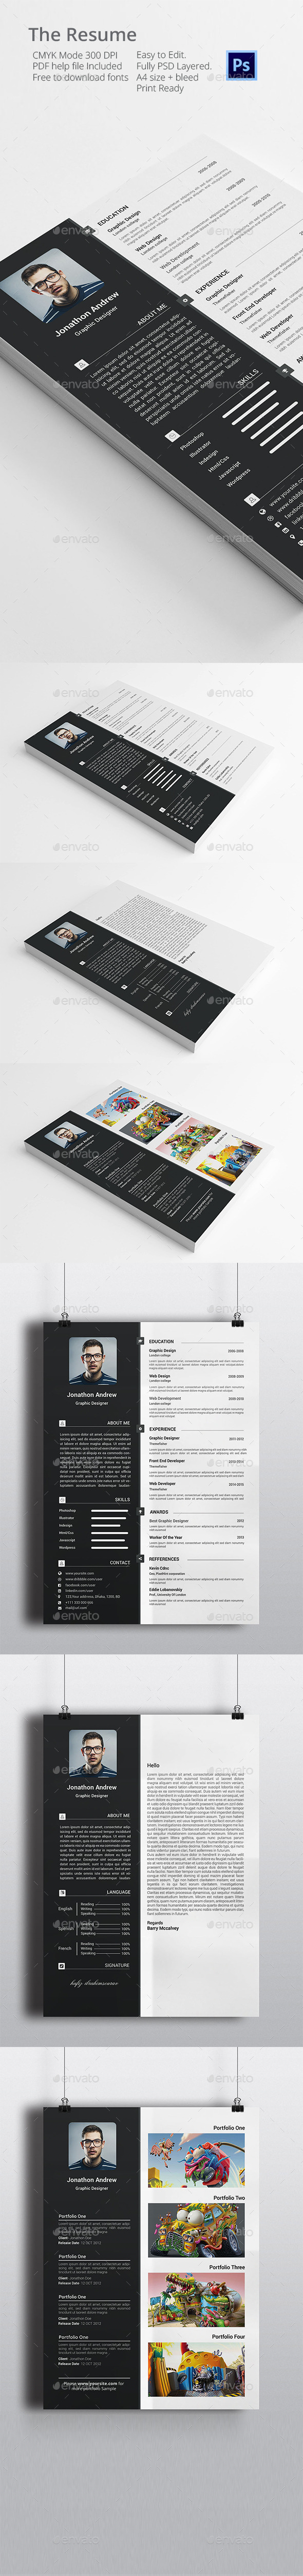 GraphicRiver The Resume cv 11925770